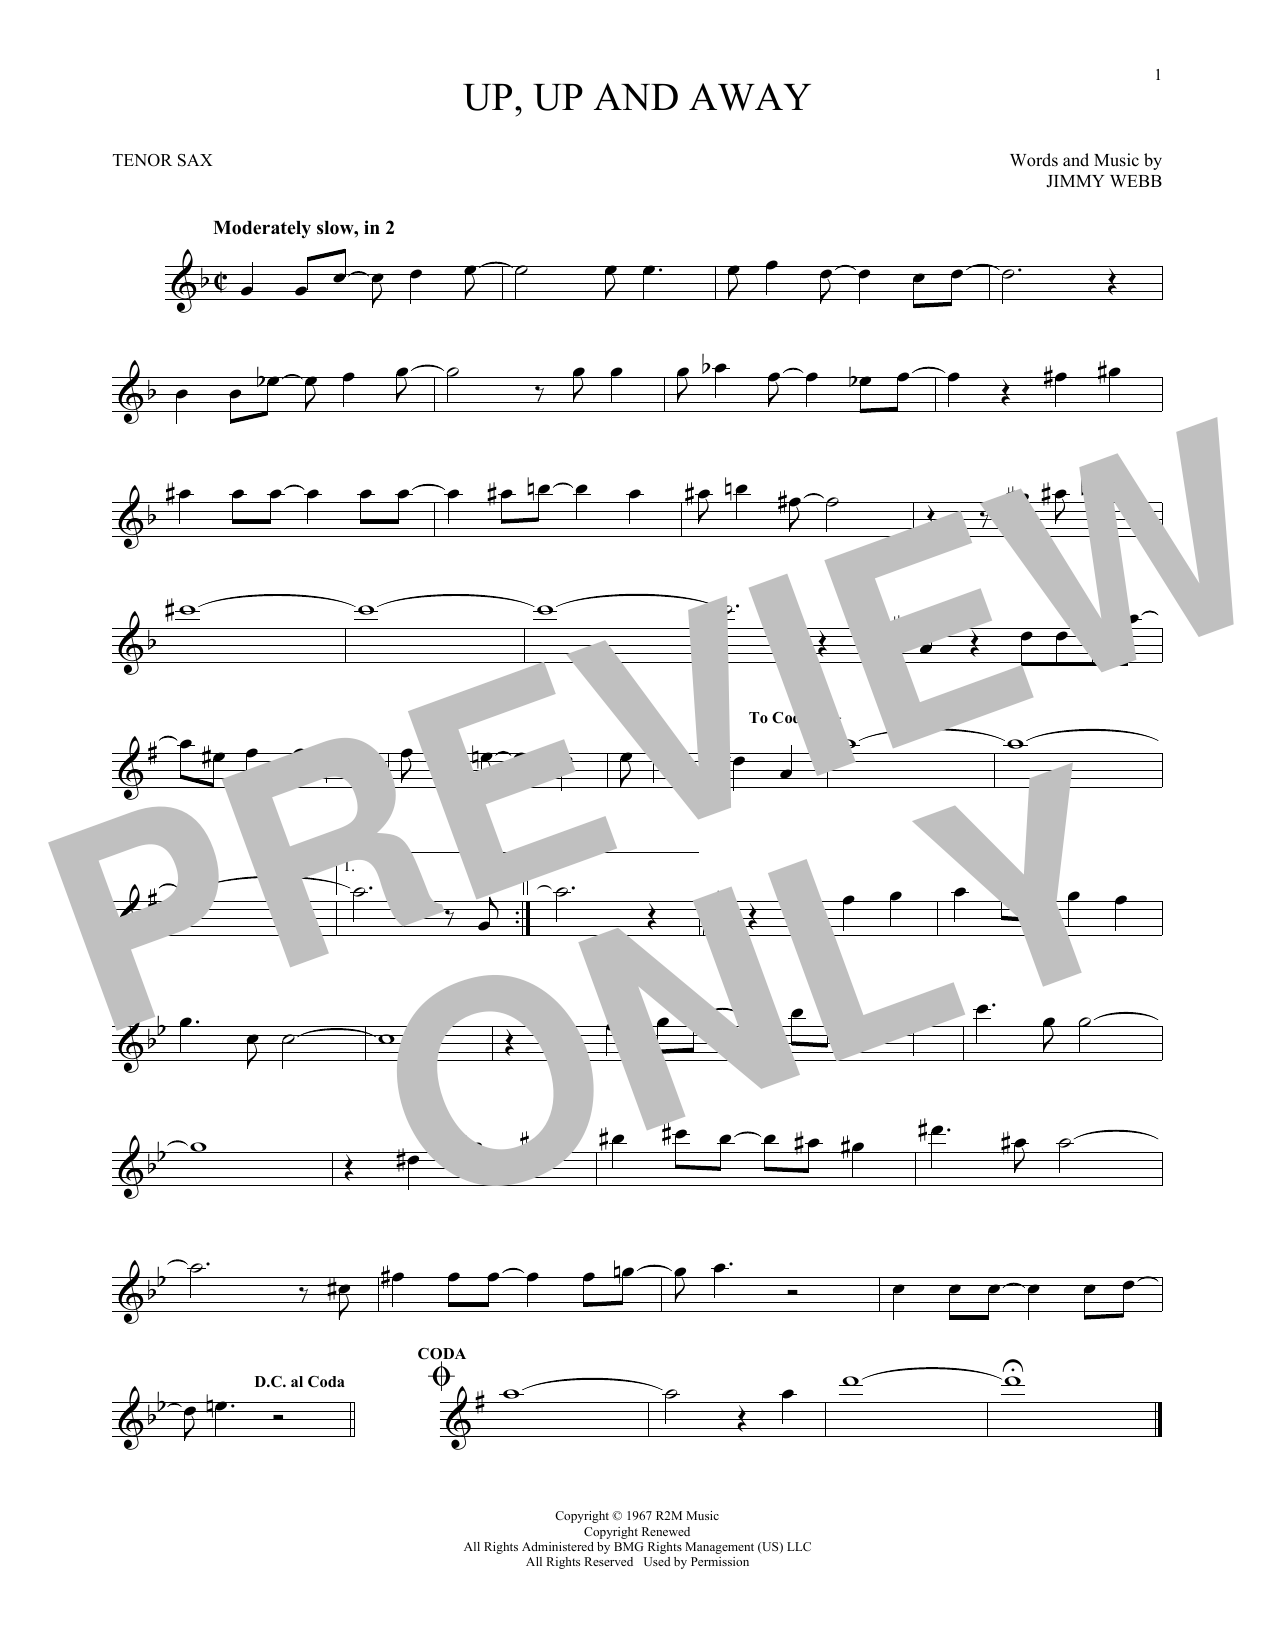 Up, Up And Away (Tenor Sax Solo)